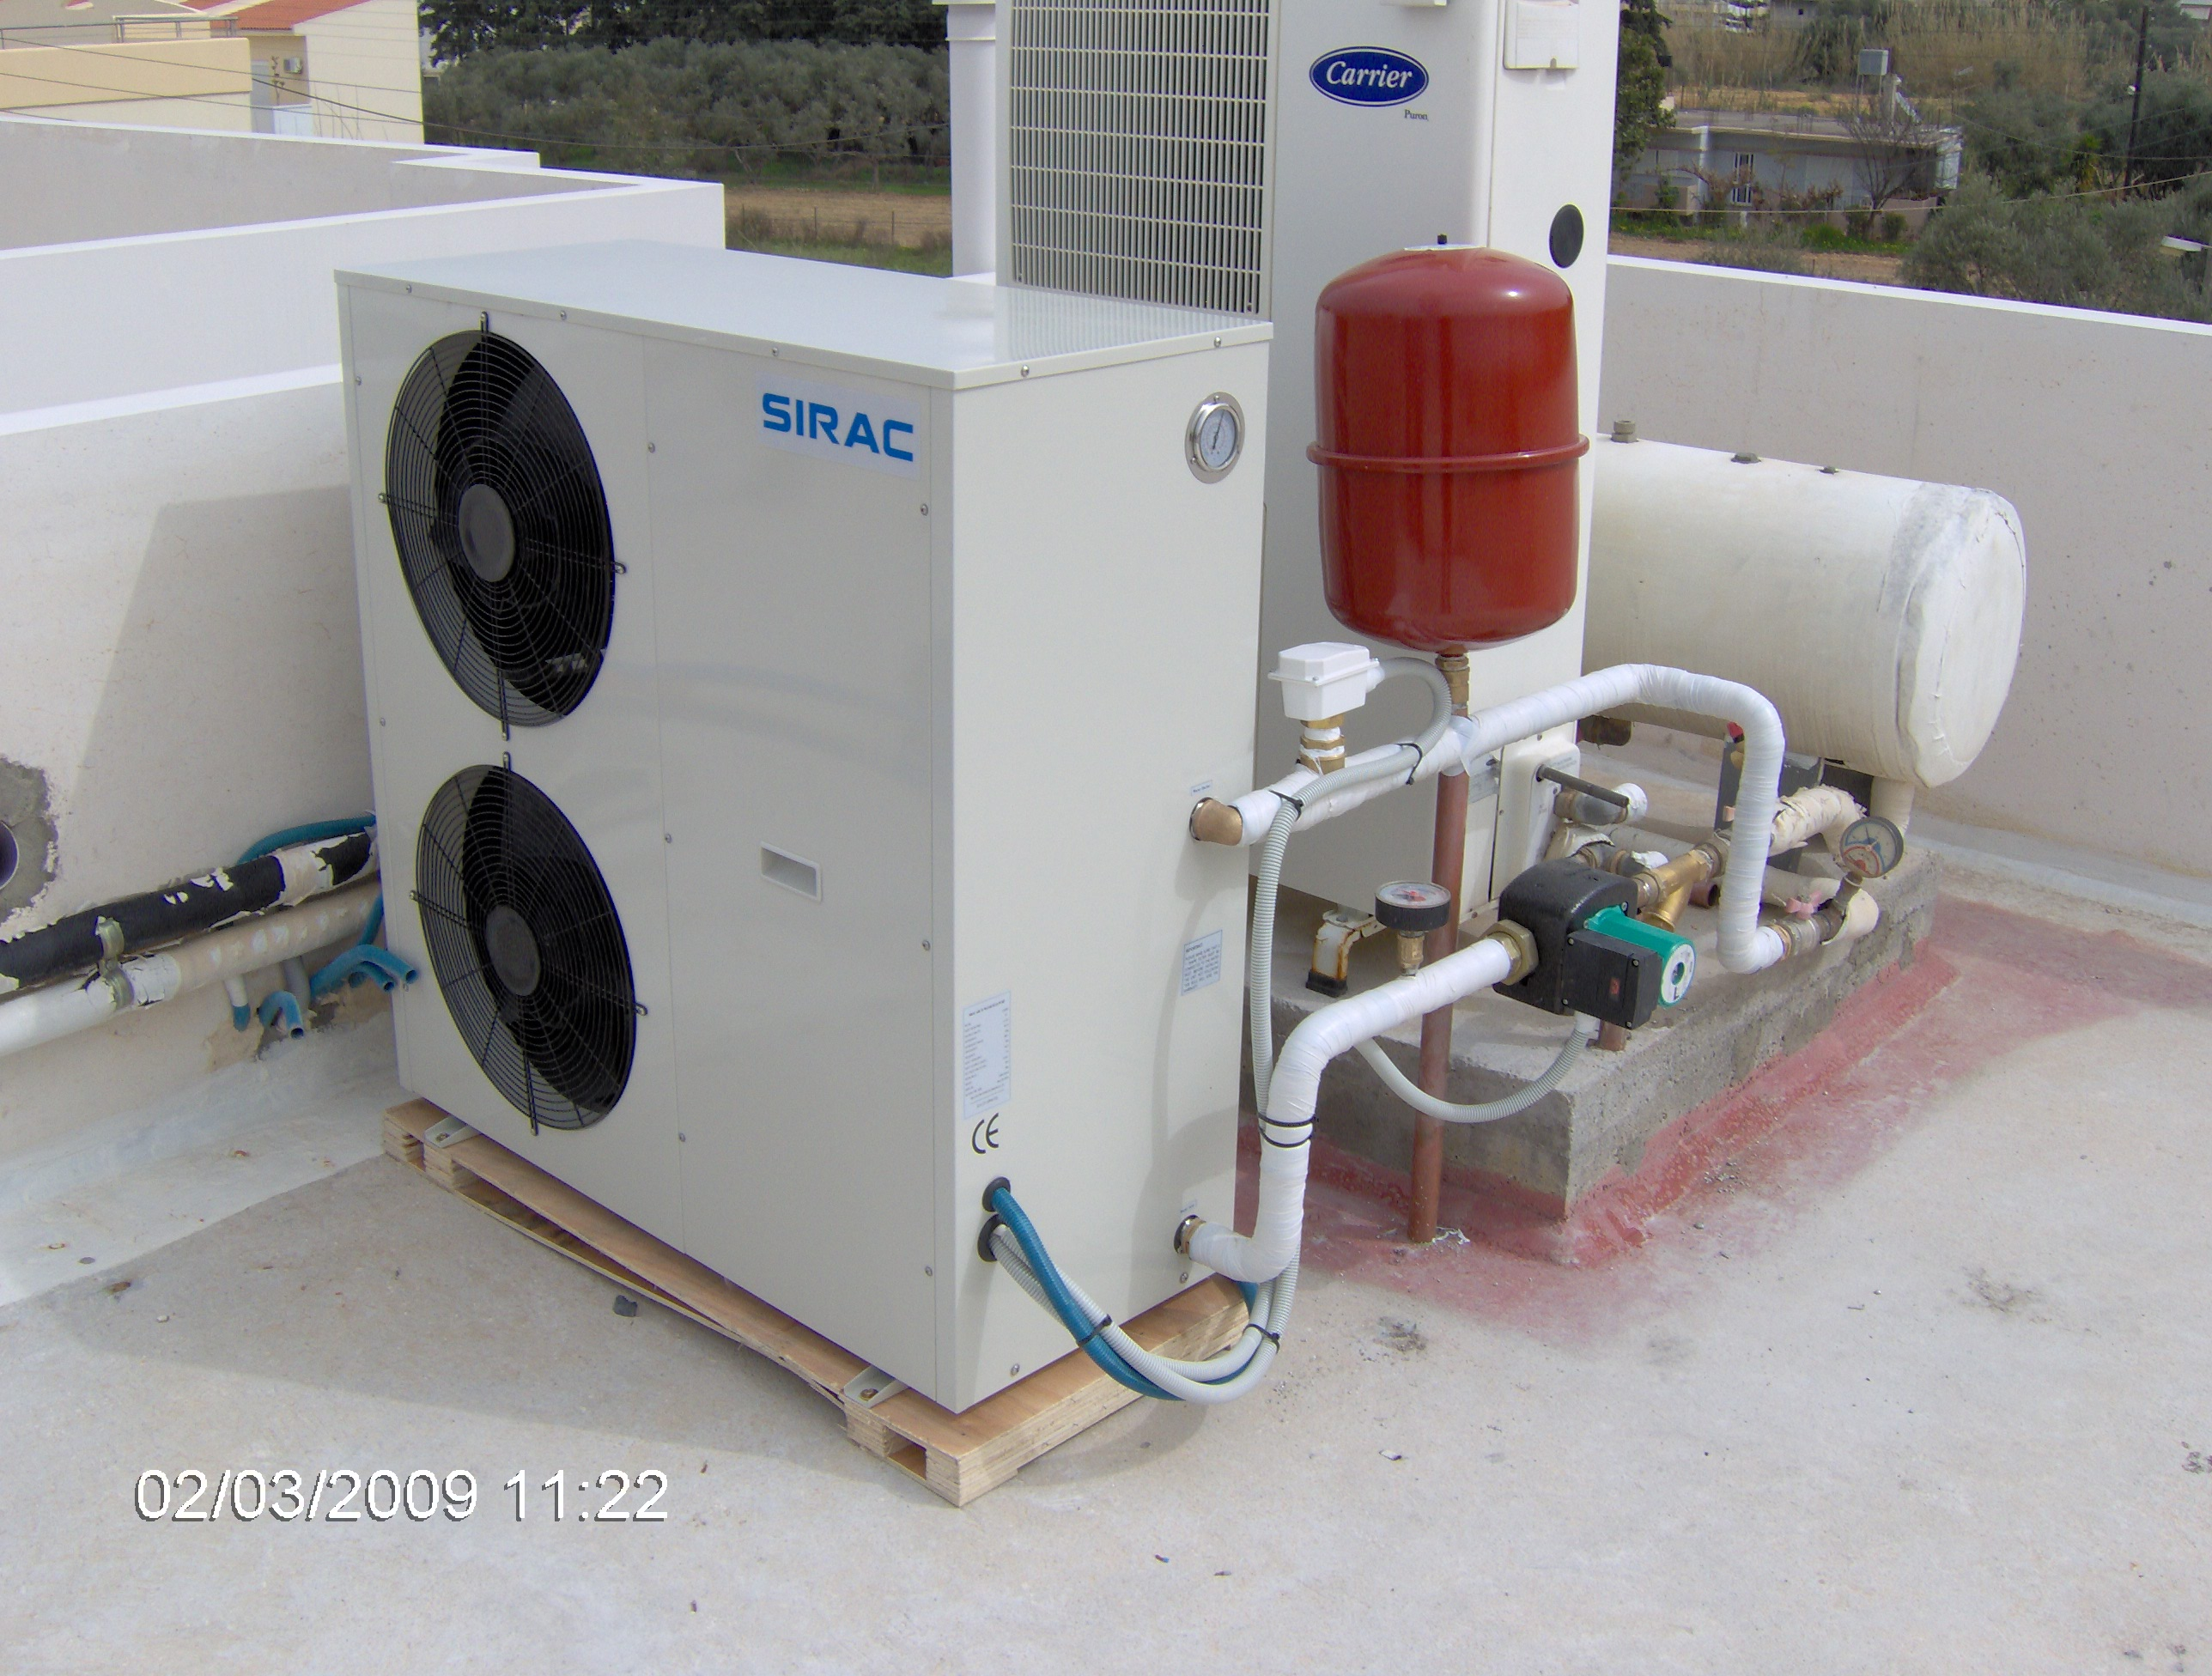 Heating Dhw Application Hpsirac Air Temp Heat Pump Wiring Diagram Project Reference